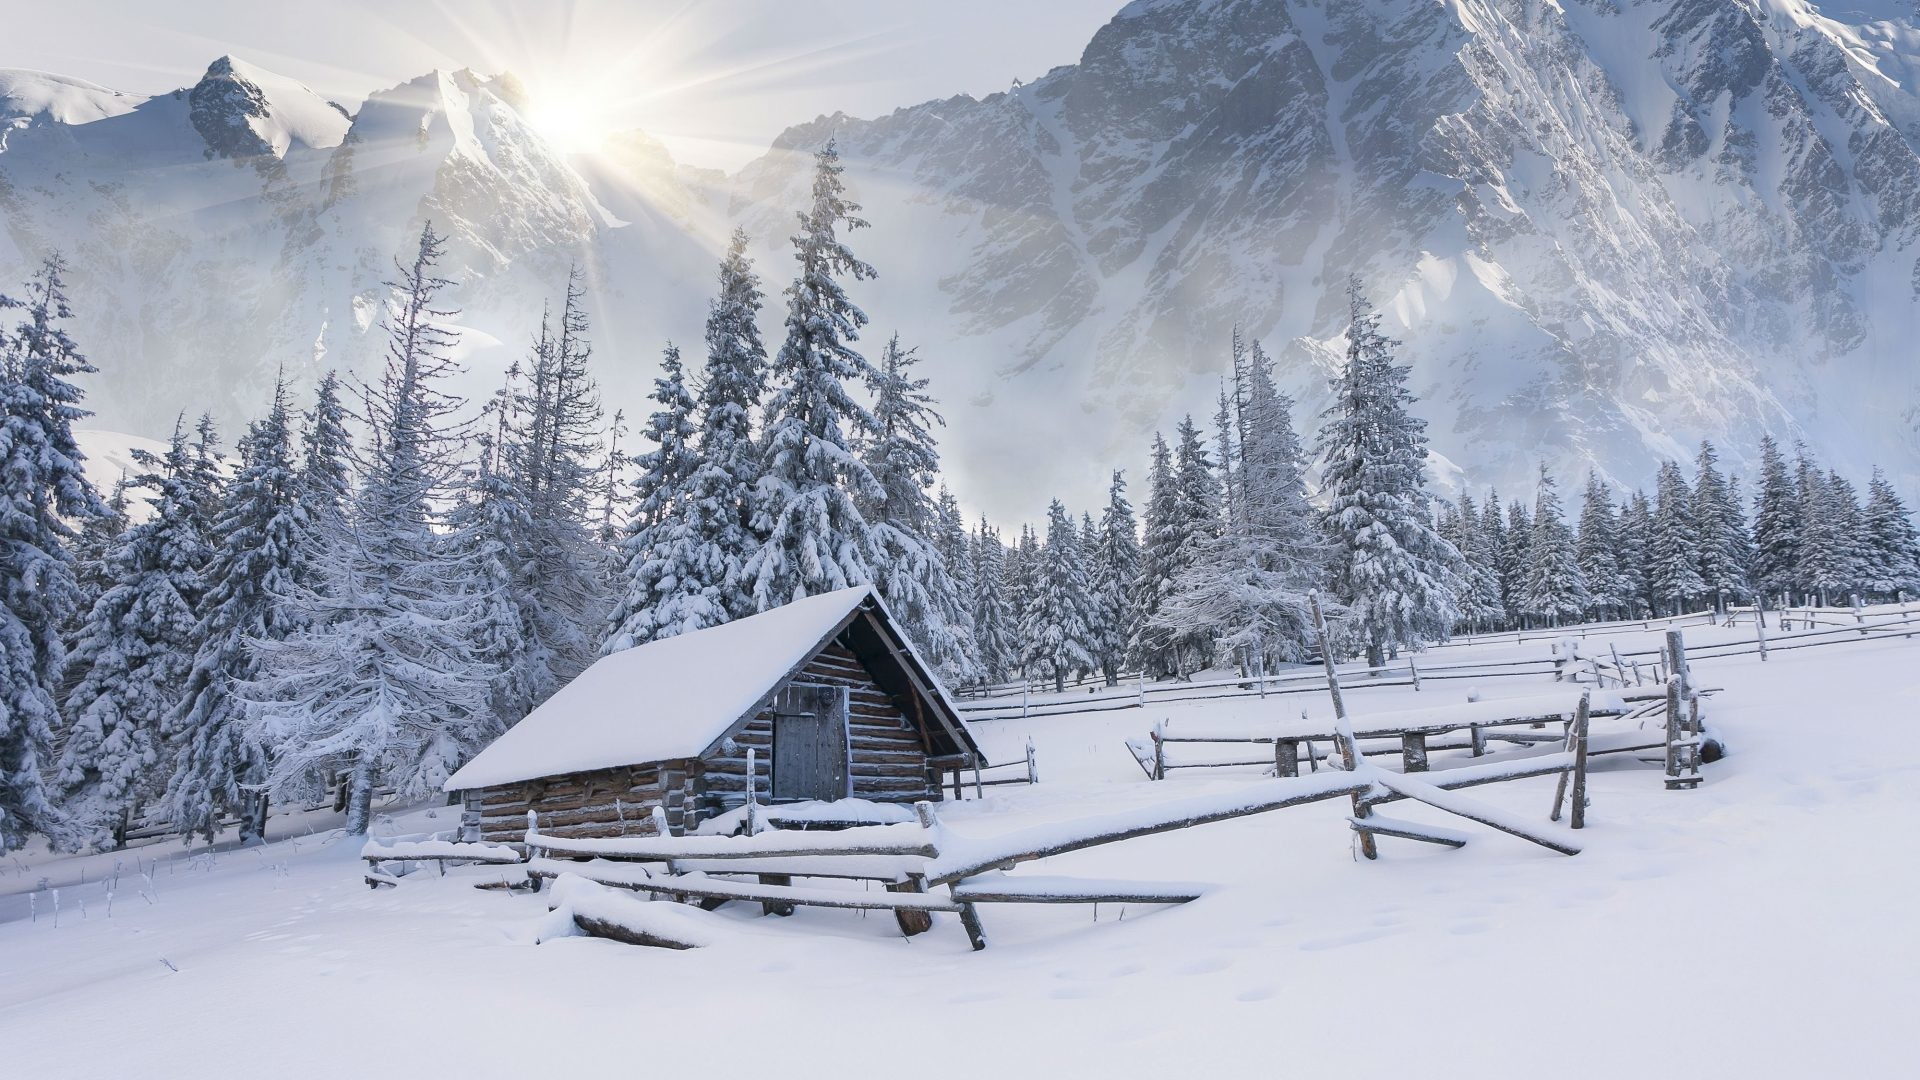 January 18, 2017 – Winter Mountains House Snow Nature Wide Wallpapers  Desktop for HD 16